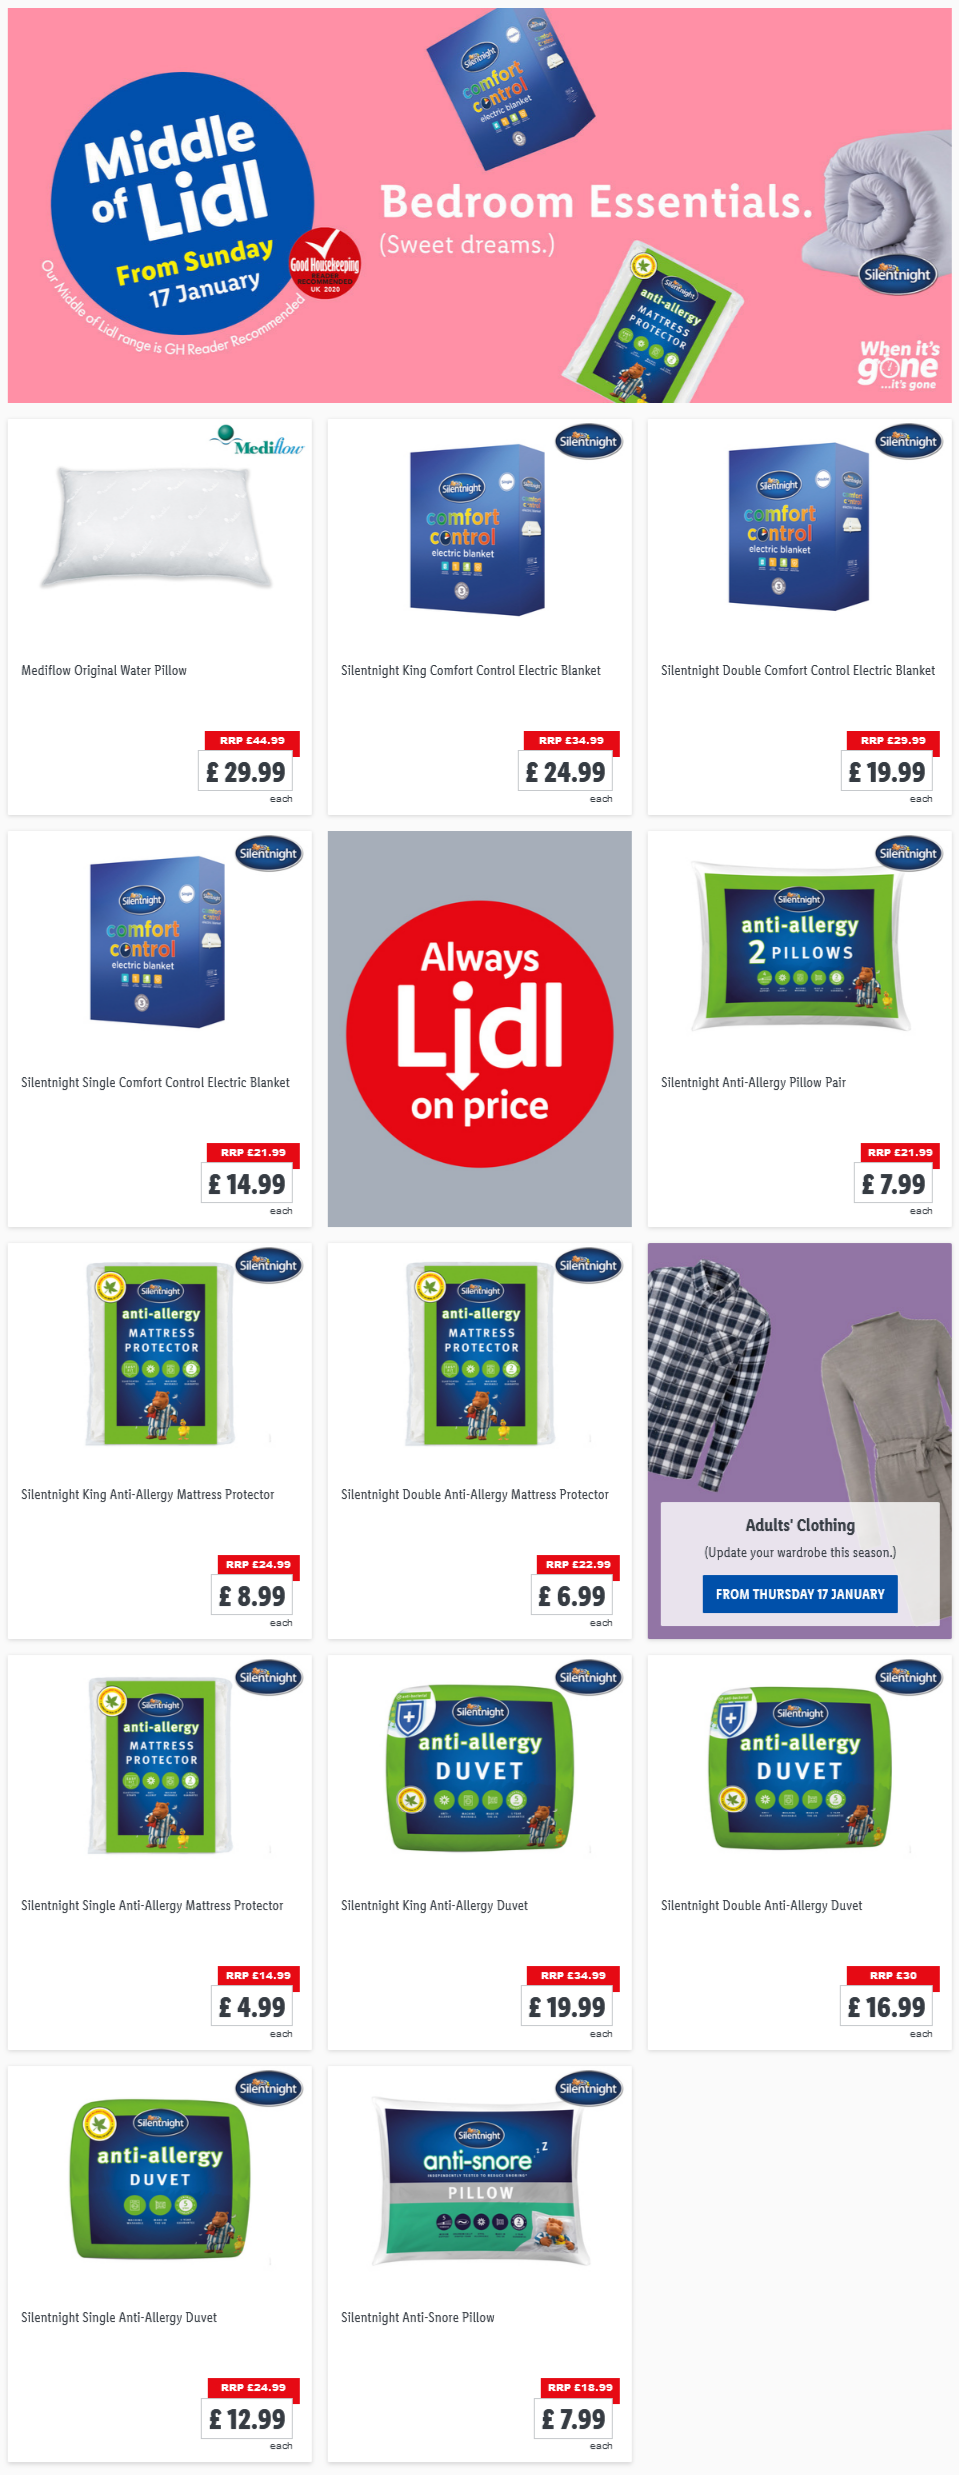 LiDL Bedroom Essentials from 17th January 2021 LiDL Sunday Offers